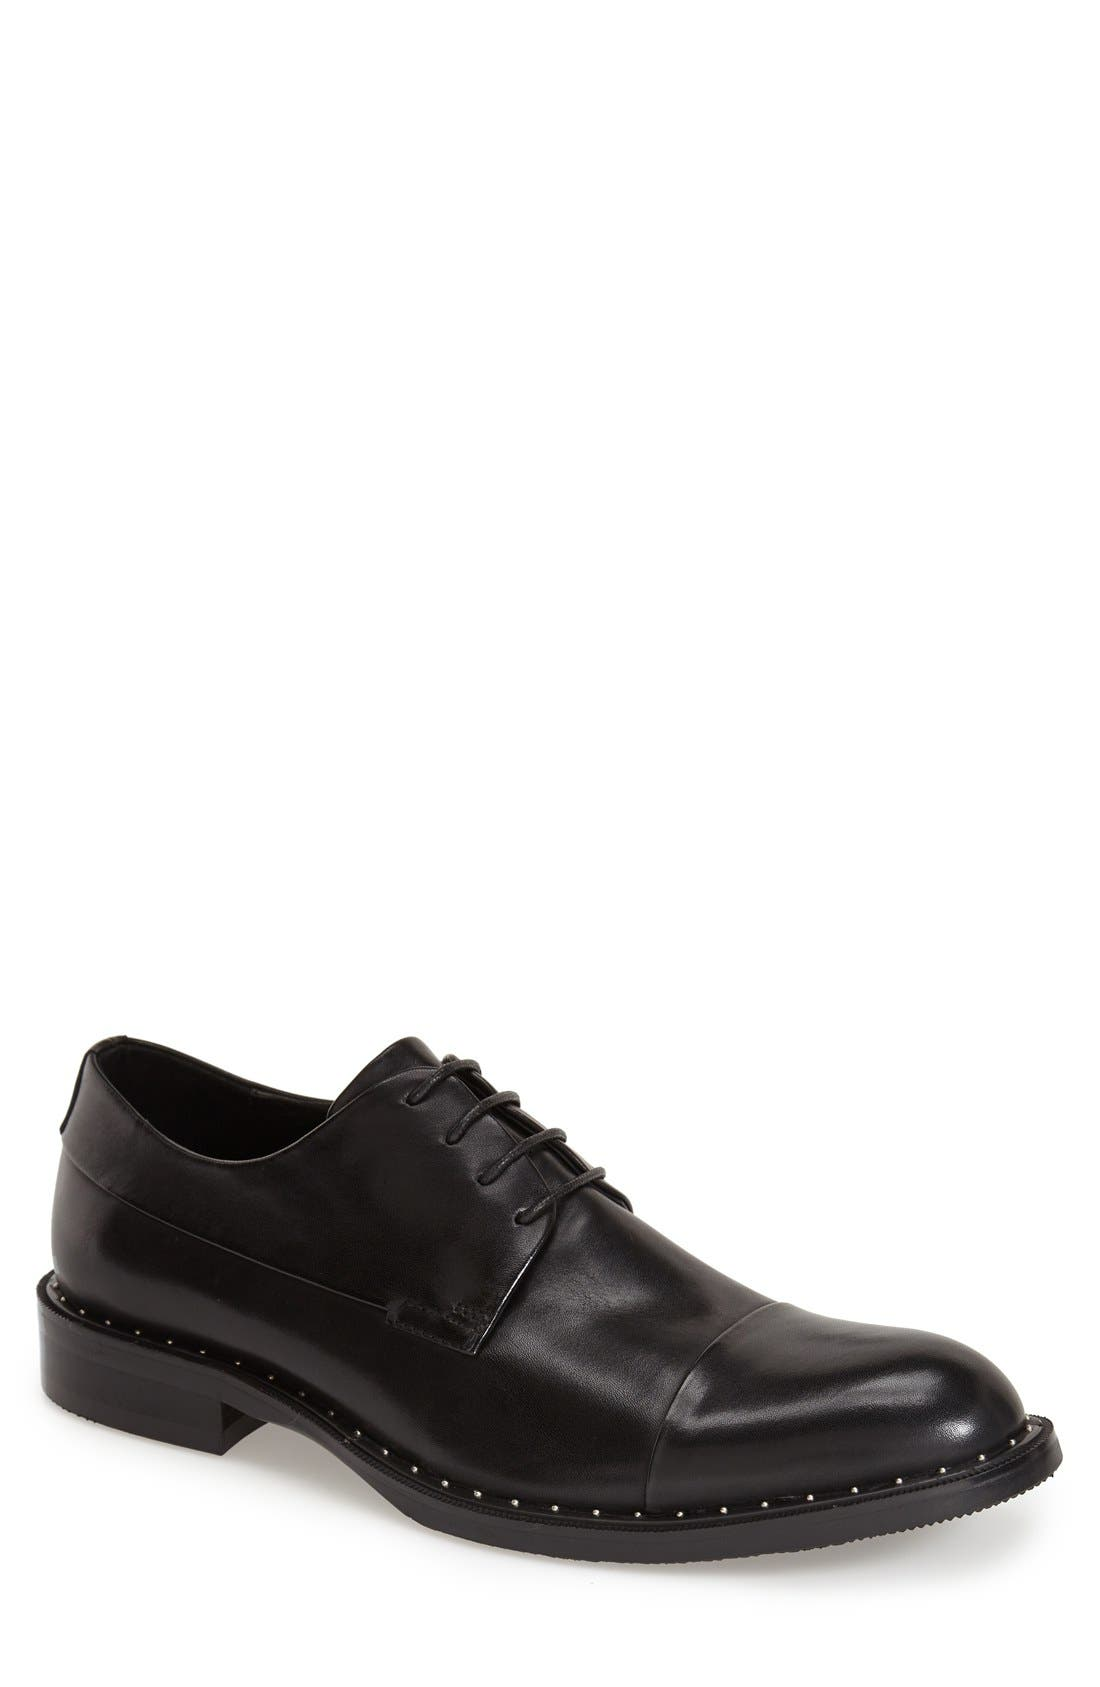 'Becket' Cap Toe Derby,                             Main thumbnail 1, color,                             001